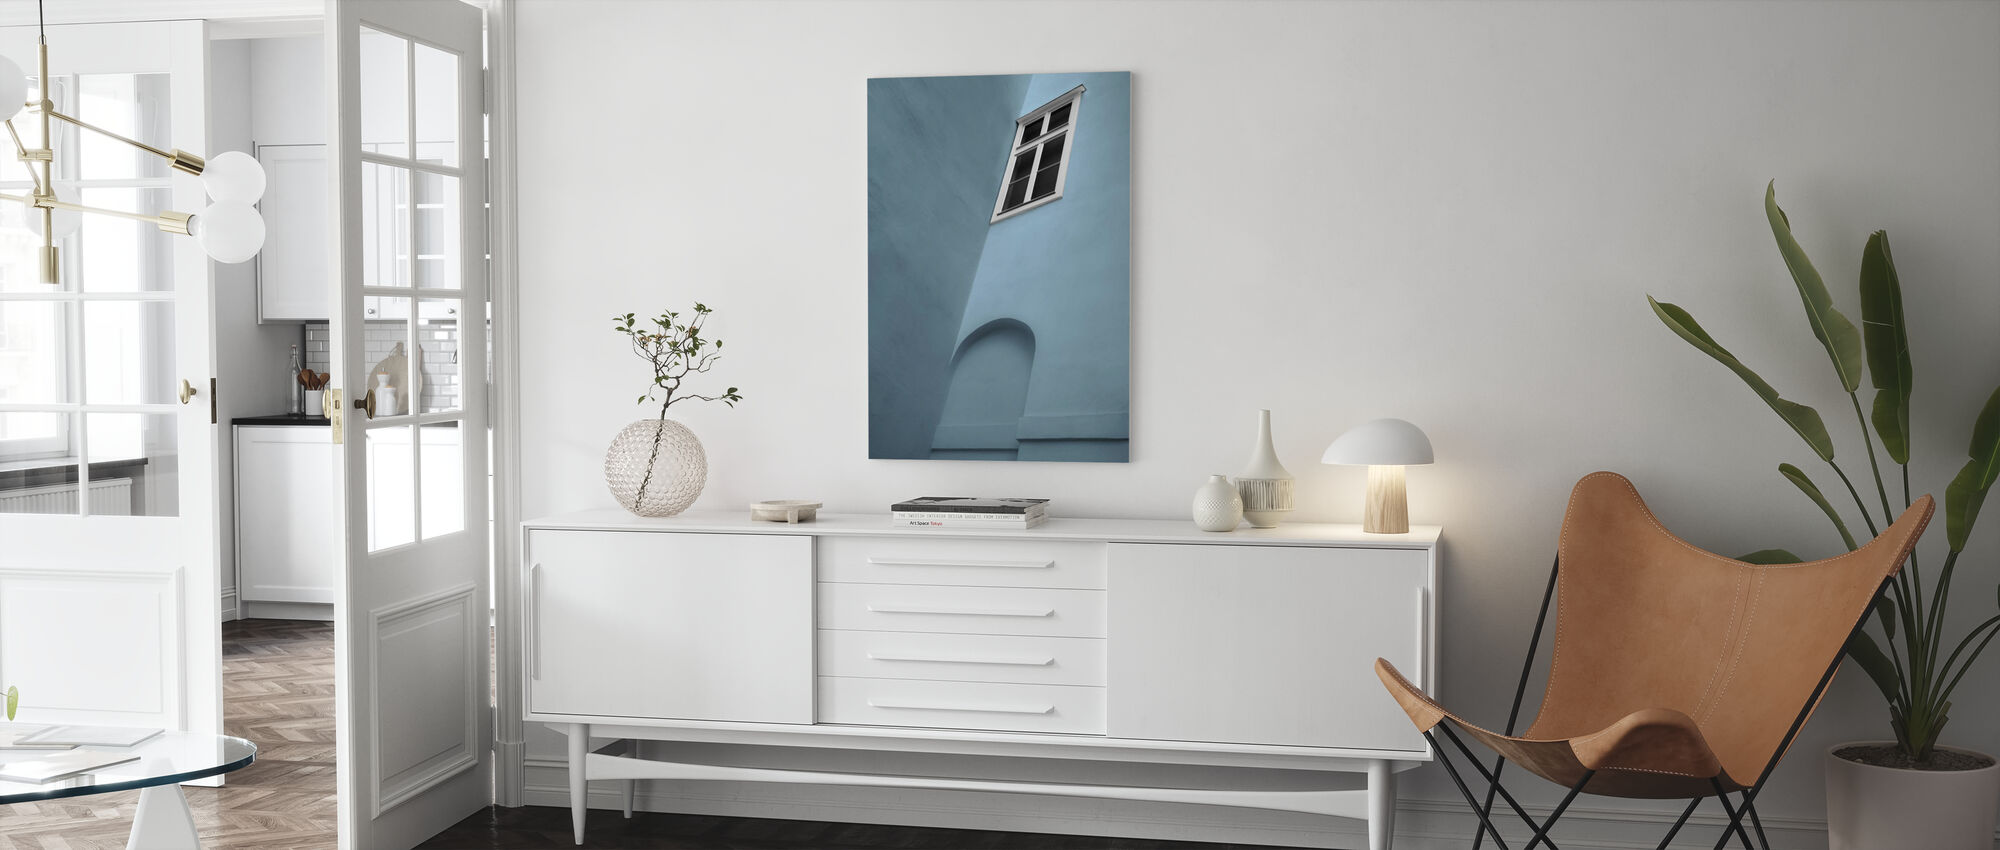 Wit venster - Canvas print - Woonkamer